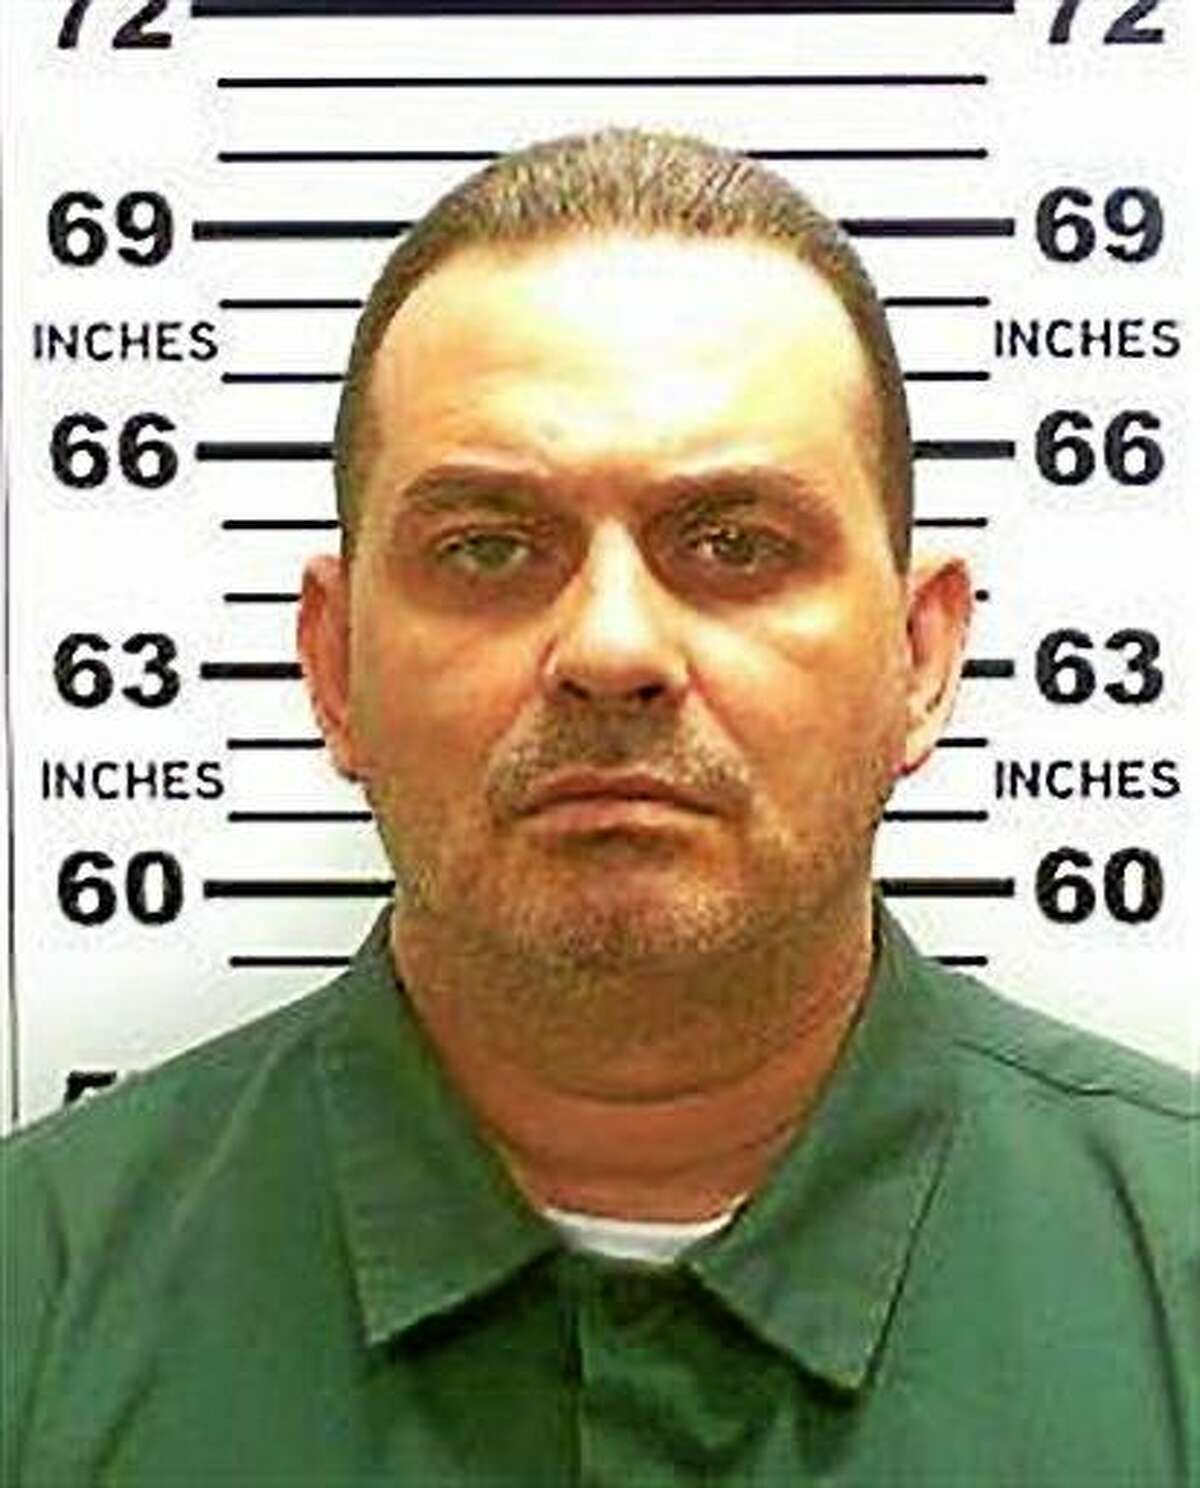 This undated photo released by the New York State Police shows Richard Matt. Authorities say 48-year-old Richard Matt and 34-year-old David Sweat escaped from the Clinton Correctional Facility in Dannemora. (New York State Police via AP)